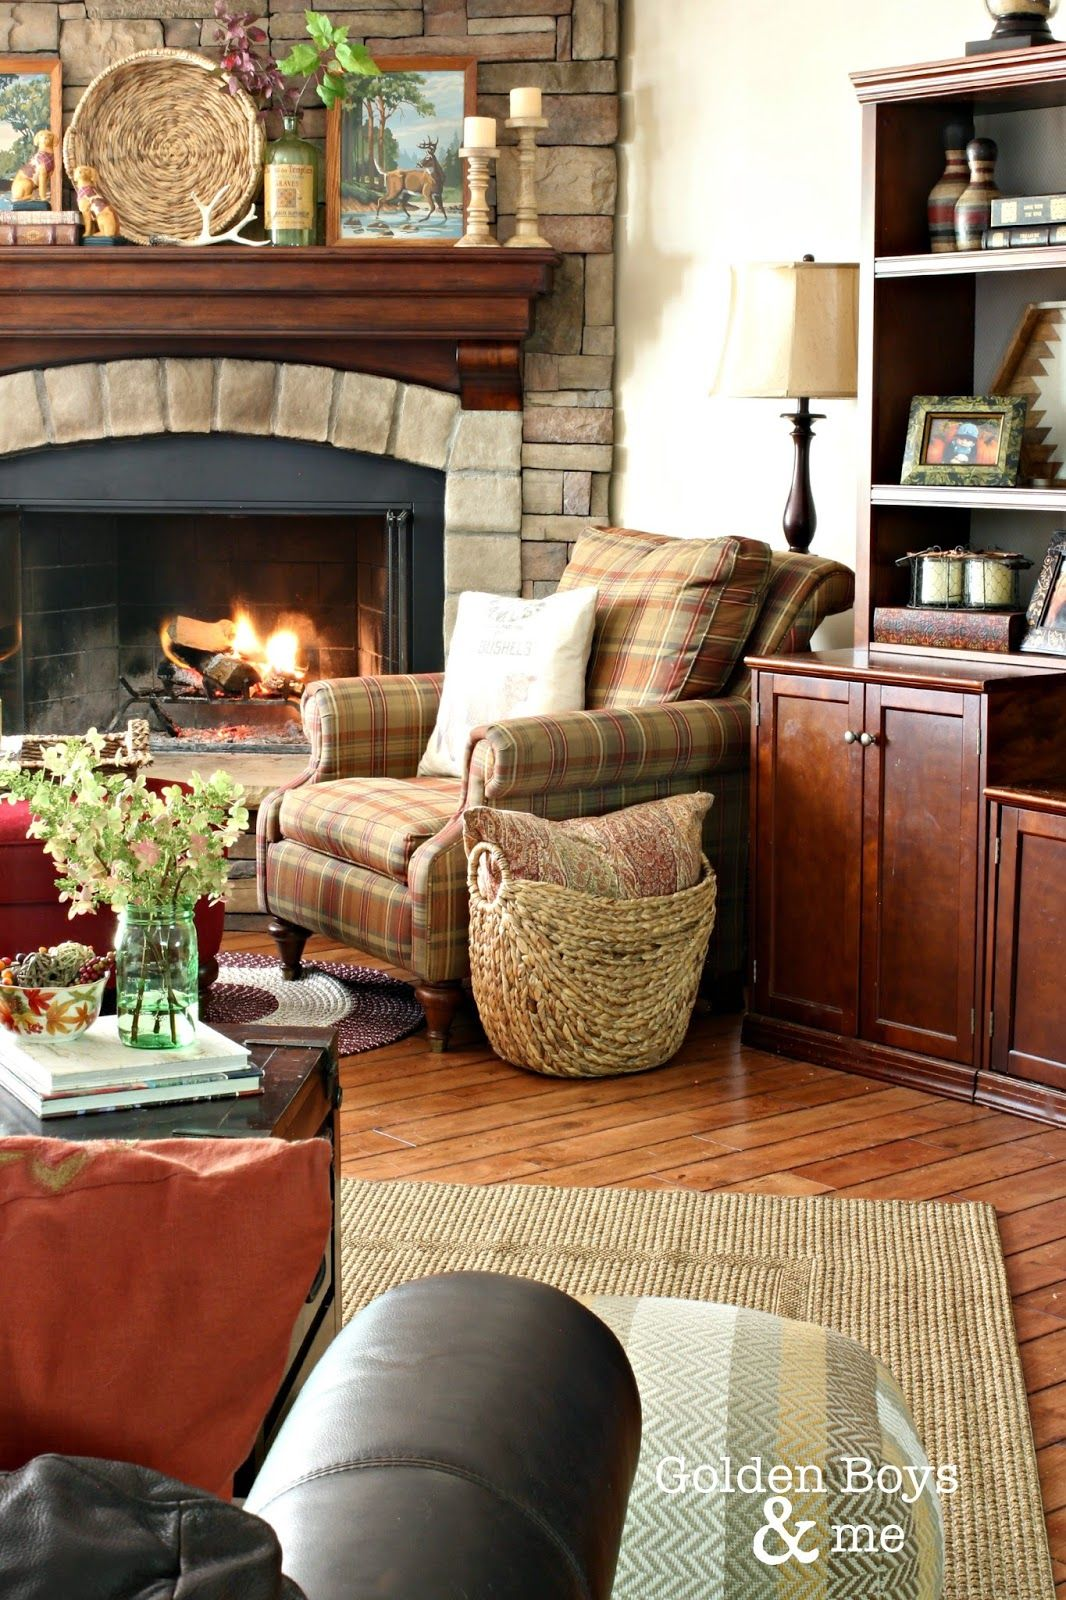 Design Ideas For Family Room With Fireplace Our Fall Family Room Diy Home Decor Ideas Family Room Home